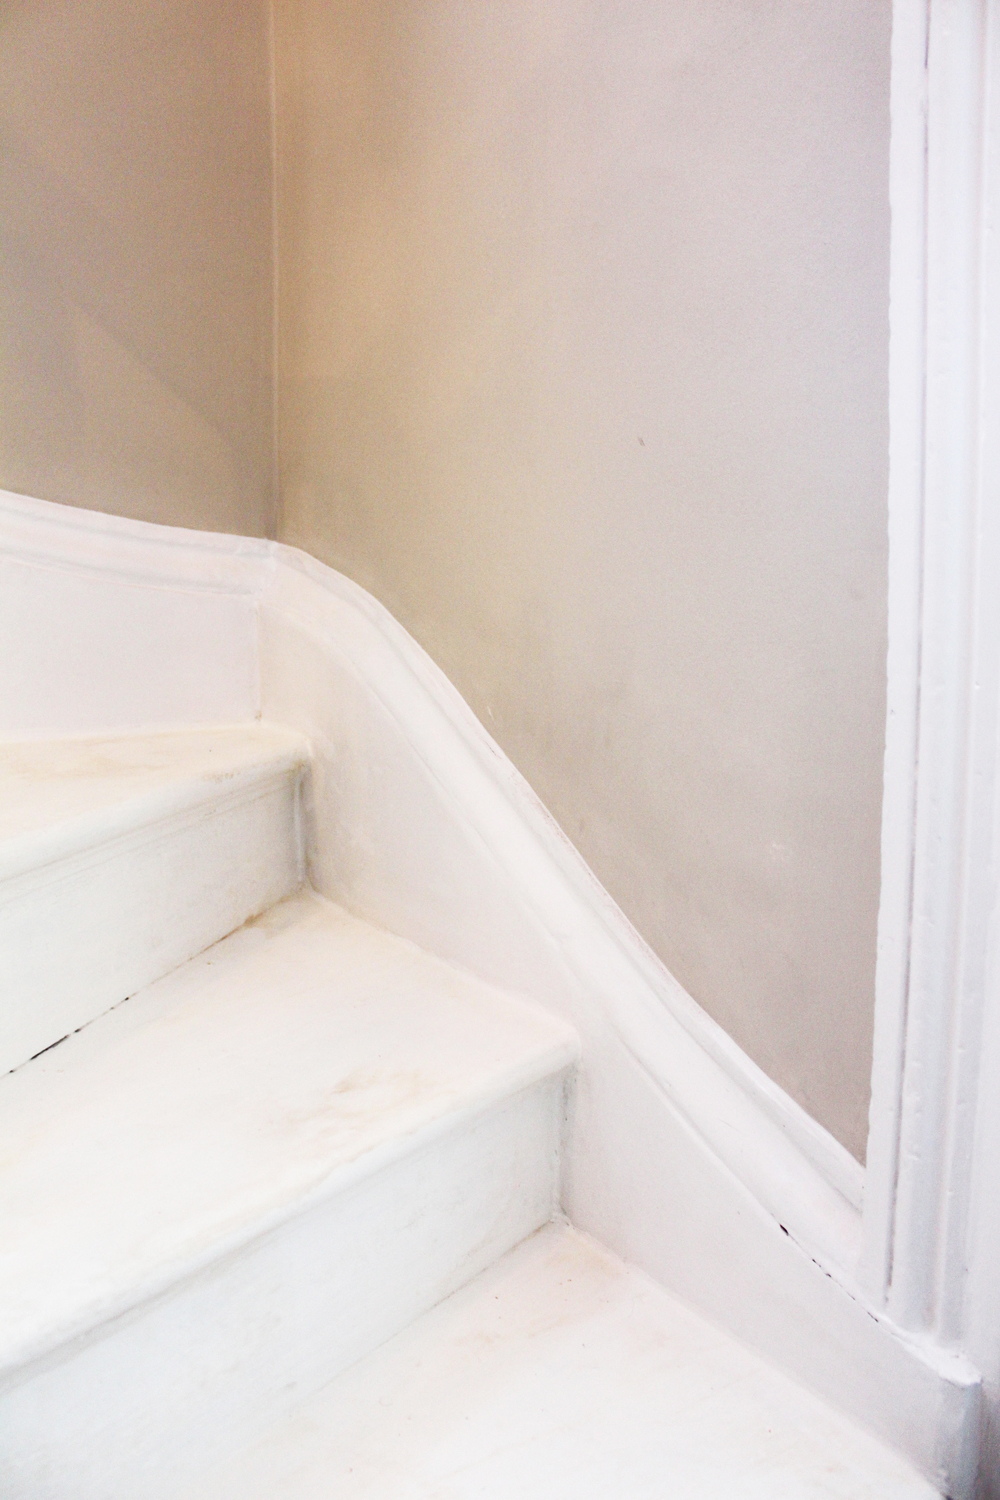 #NHRenovations #Painter #Decorator #London #TufnellPark #Tufnell #Stairecase #skirting #Dulux #Satinwood